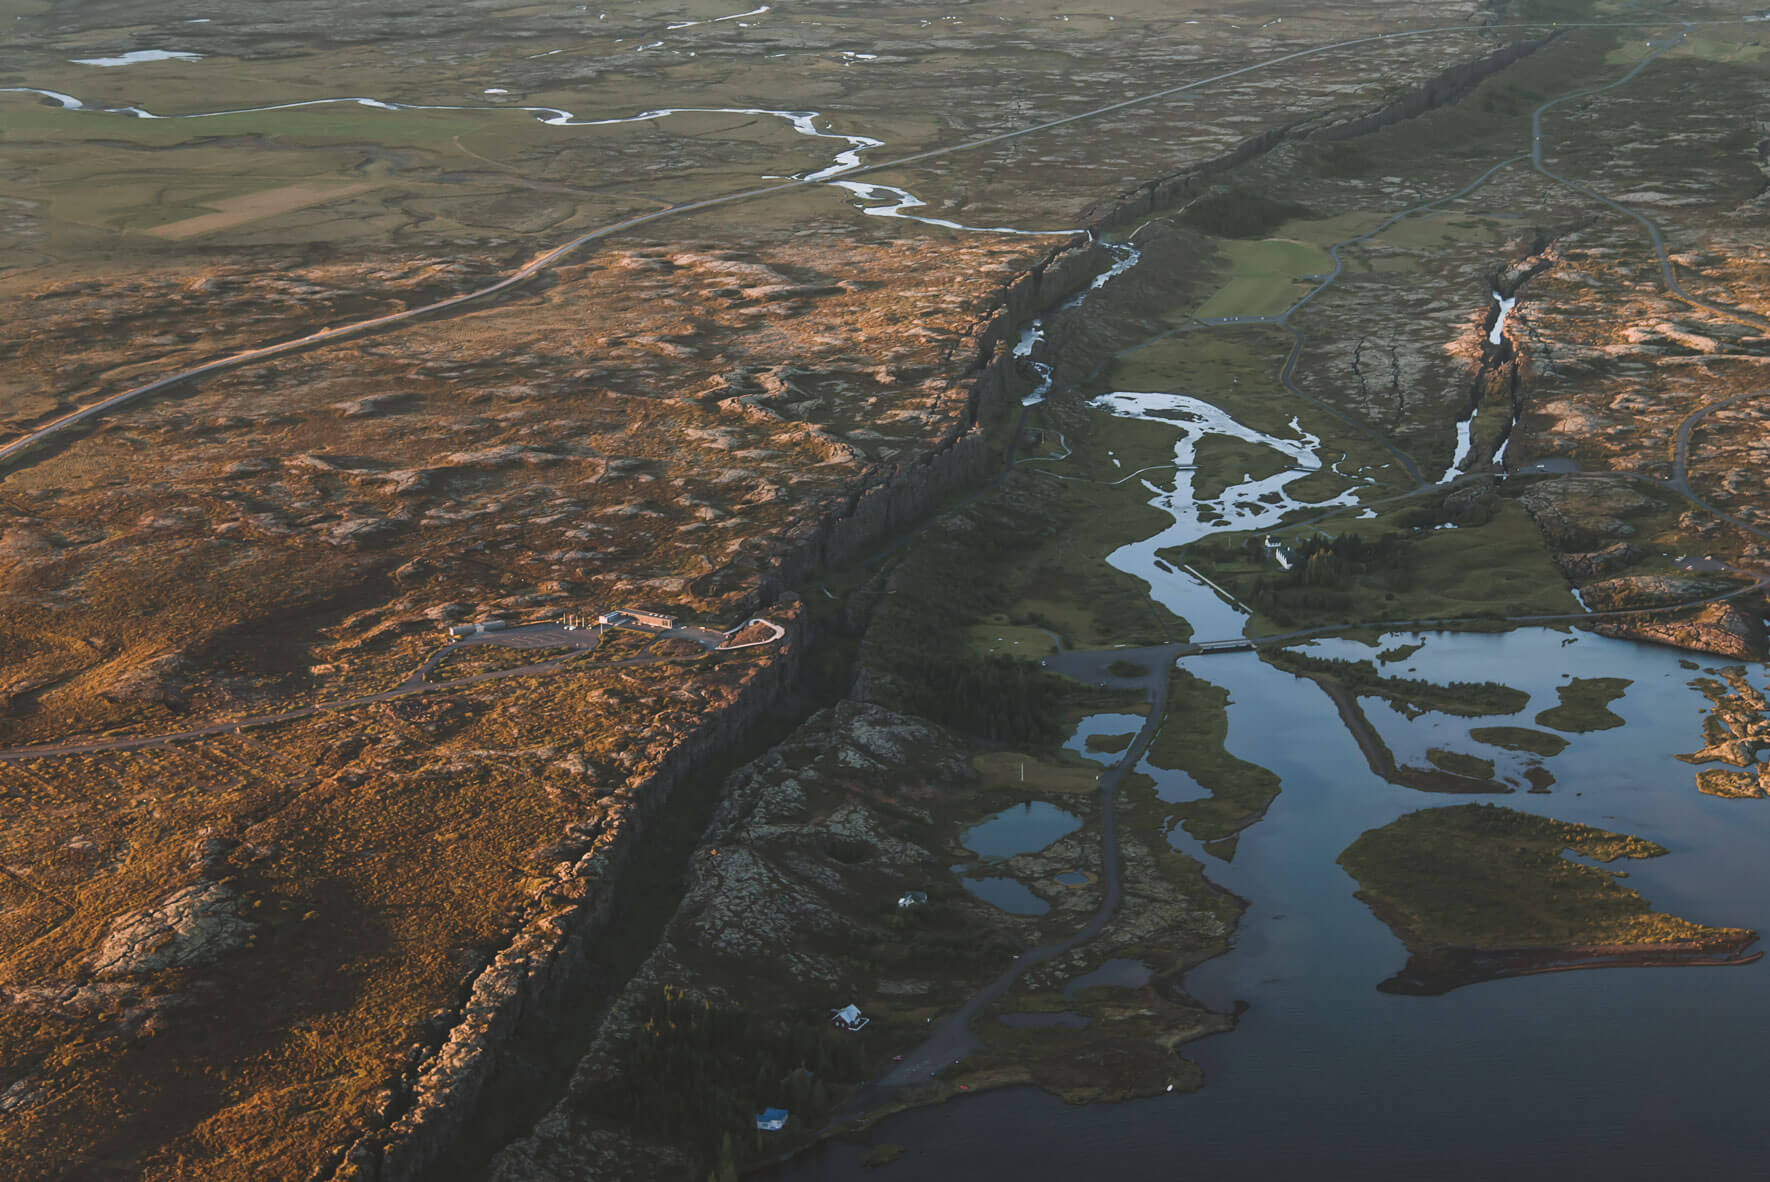 Aerial view of Þingvellir National Park in Iceland